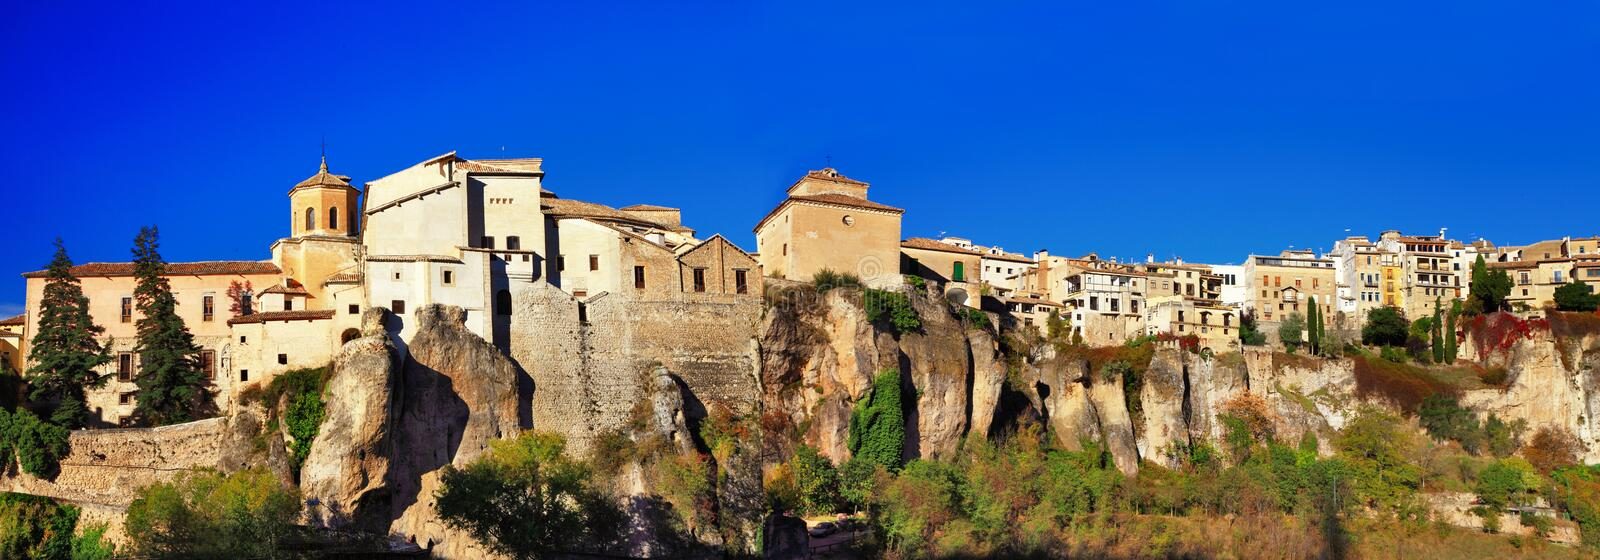 Download Panorama of Cuenca - Spain stock image. Image of hanging - 22299857